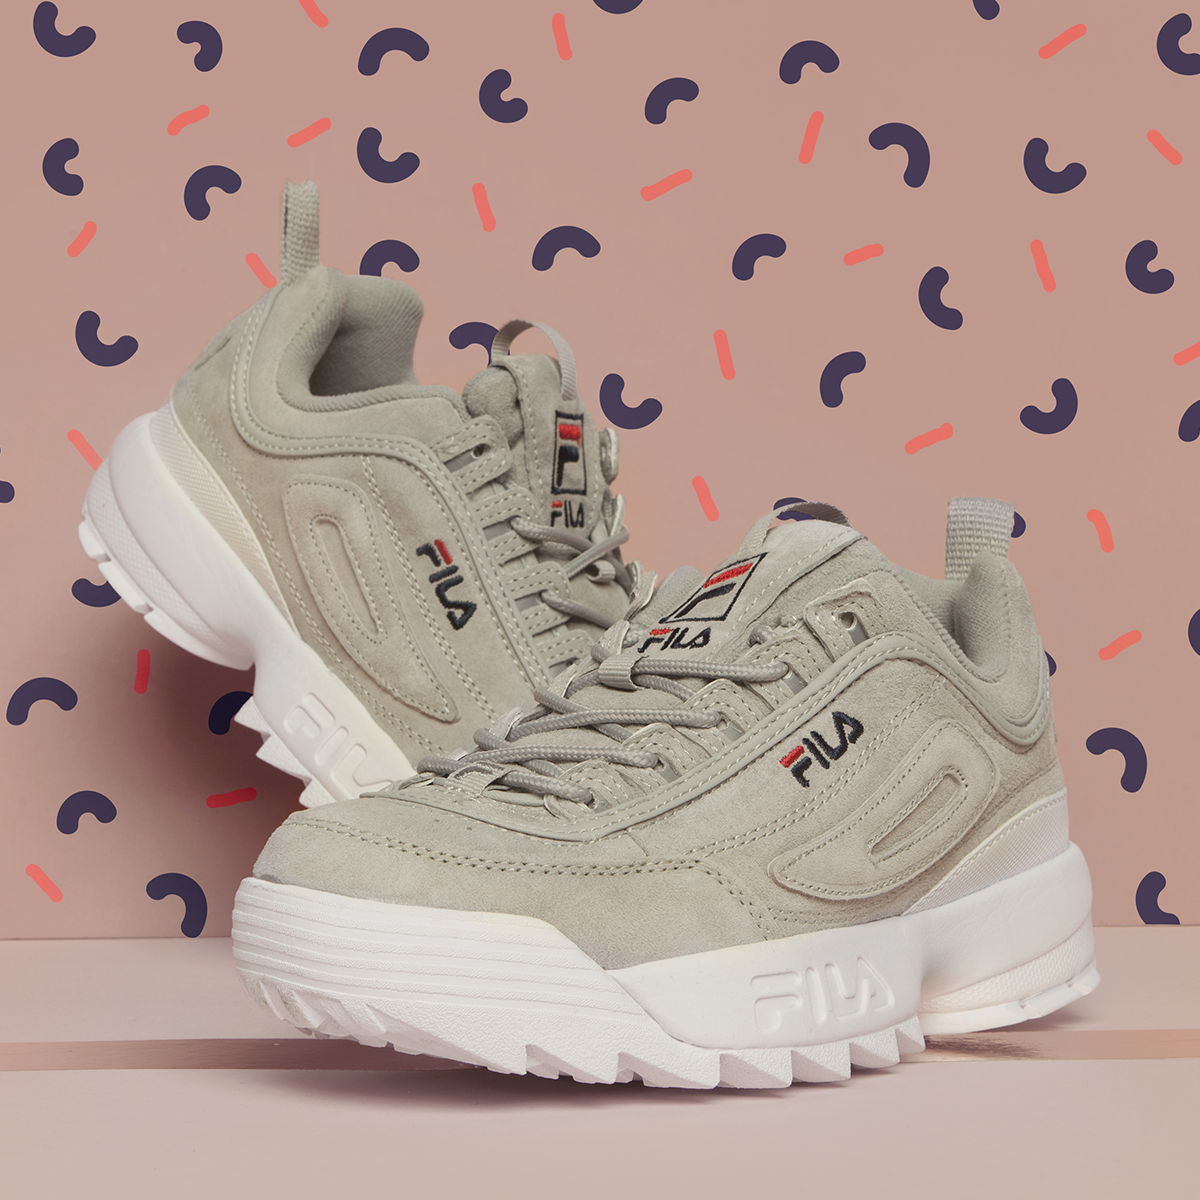 New trainers in Schuh, New Square Shopping Centre